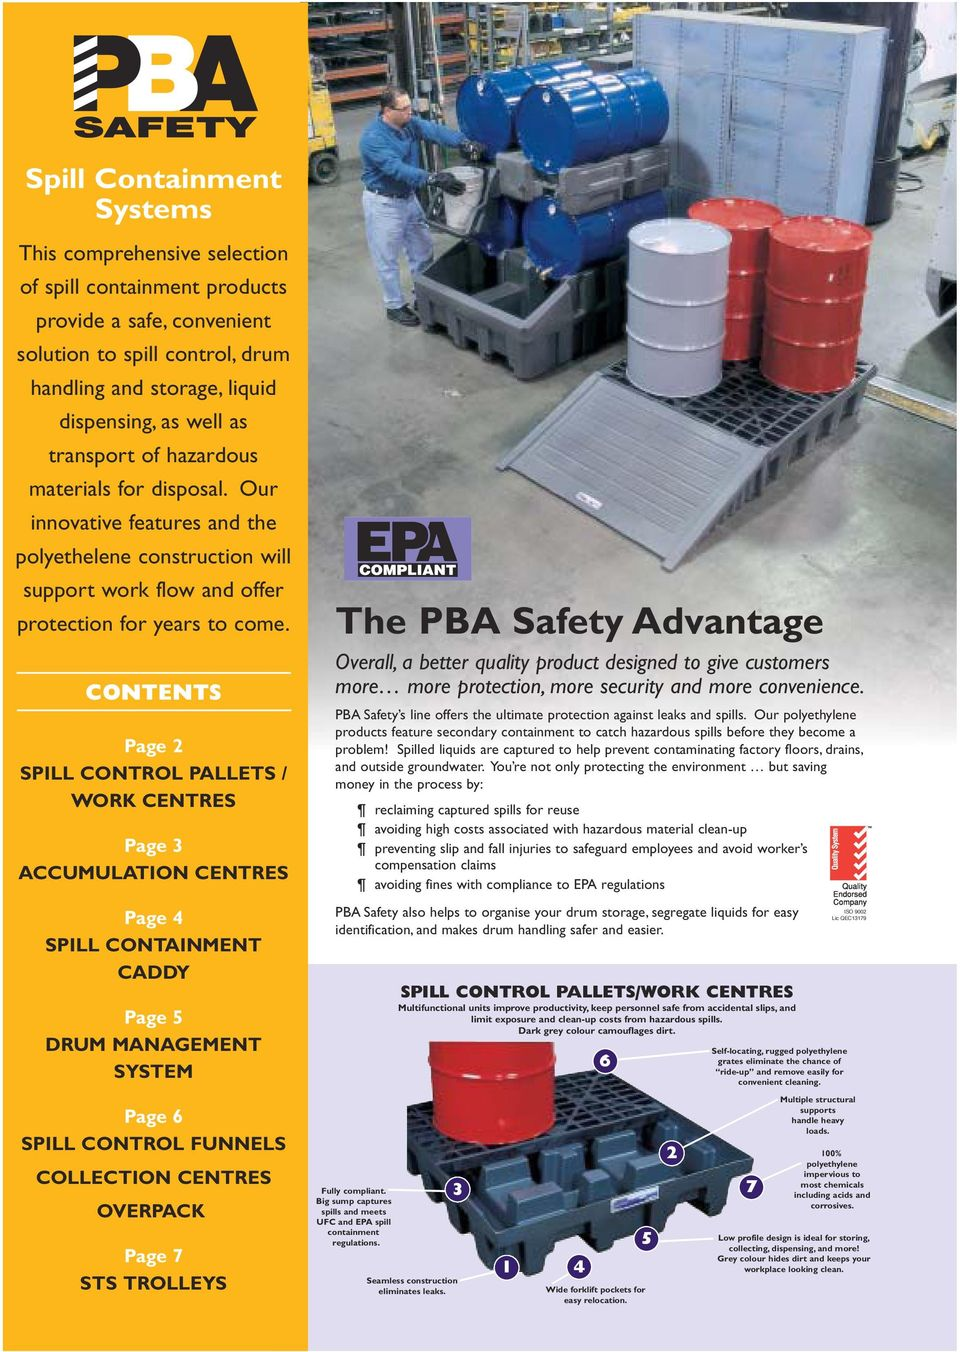 CONTENTS Page 2 SPILL CONTROL PALLETS / WORK CENTRES Page 3 ACCUMULATION CENTRES Page 4 SPILL CONTAINMENT CADDY Page 5 DRUM MANAGEMENT SYSTEM The PBA Safety Advantage Overall, a better quality